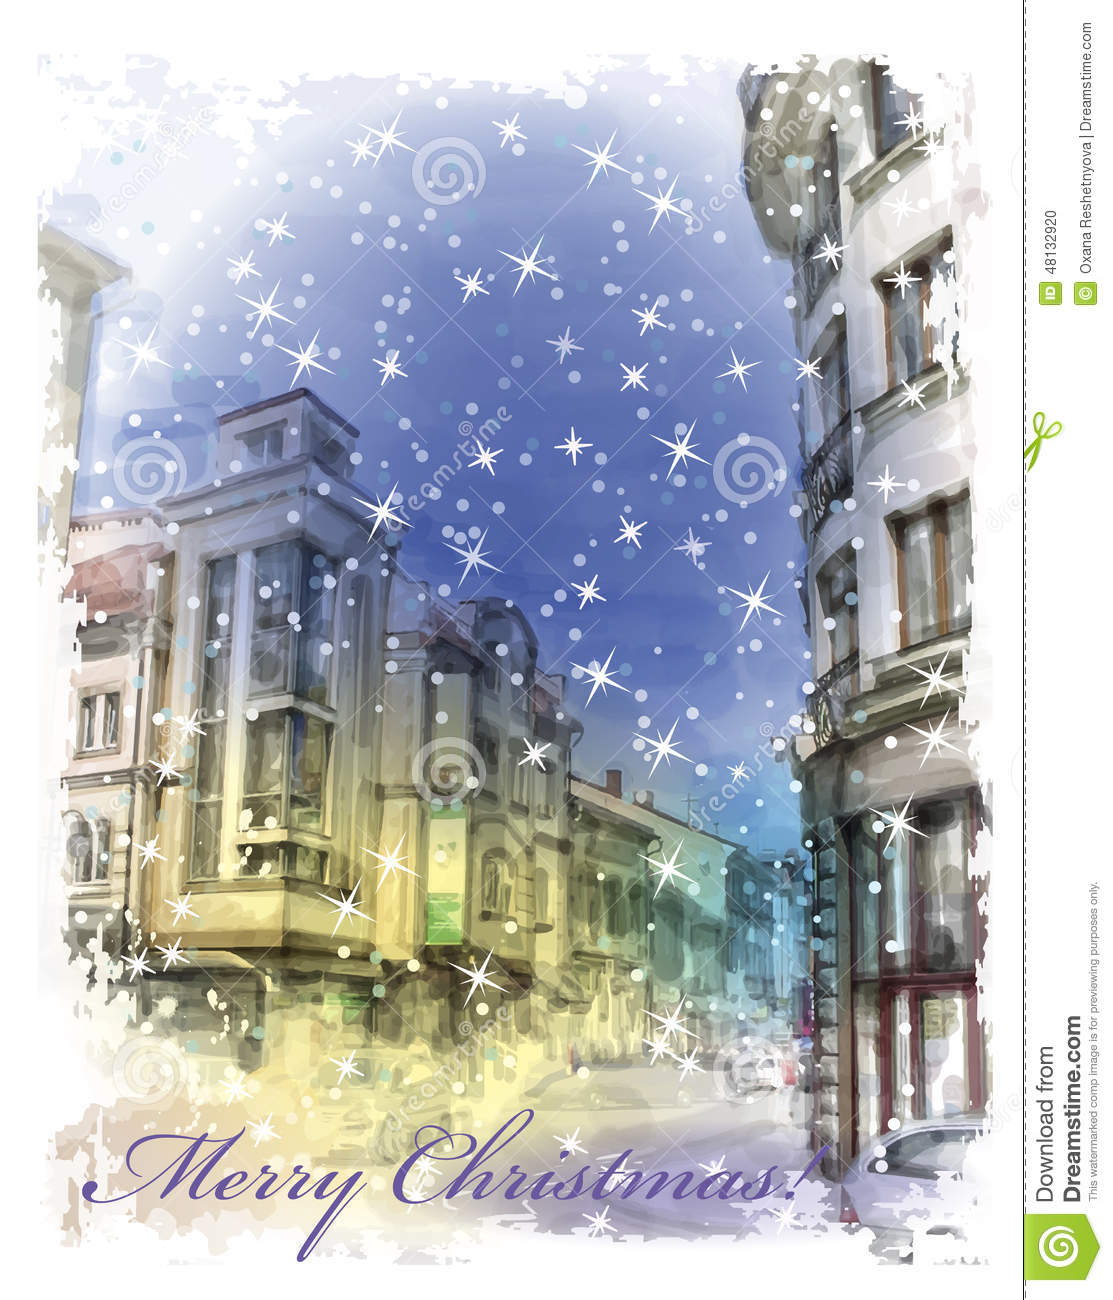 Christmas Card With Illustration Of City Street